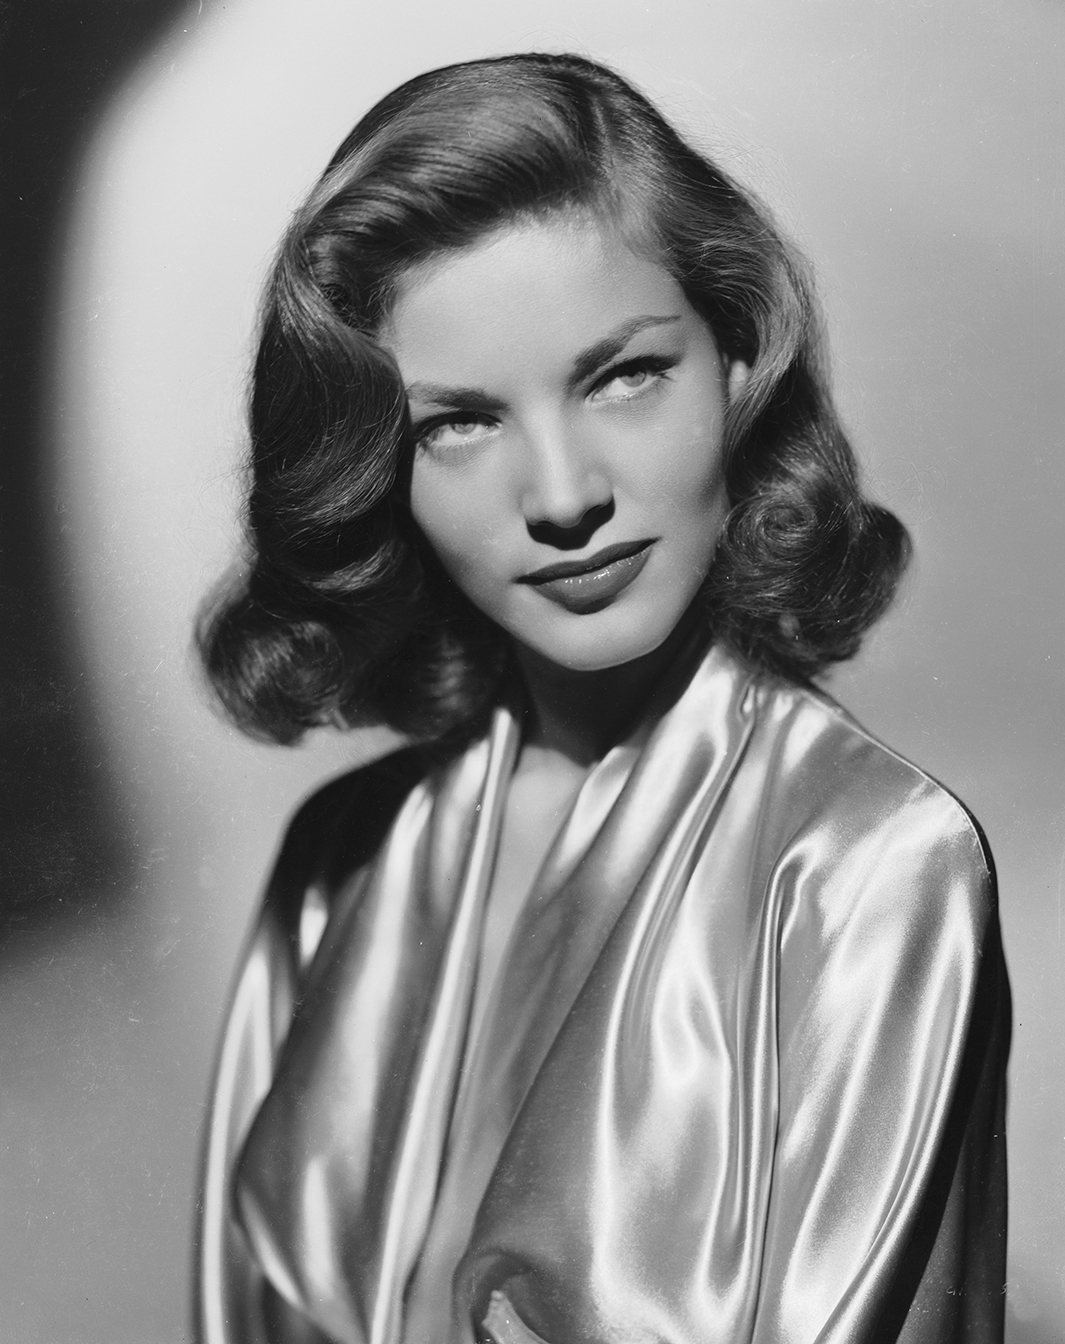 Photos of Lauren Bacall, the sultry star of the Hollywood's Golden Age.